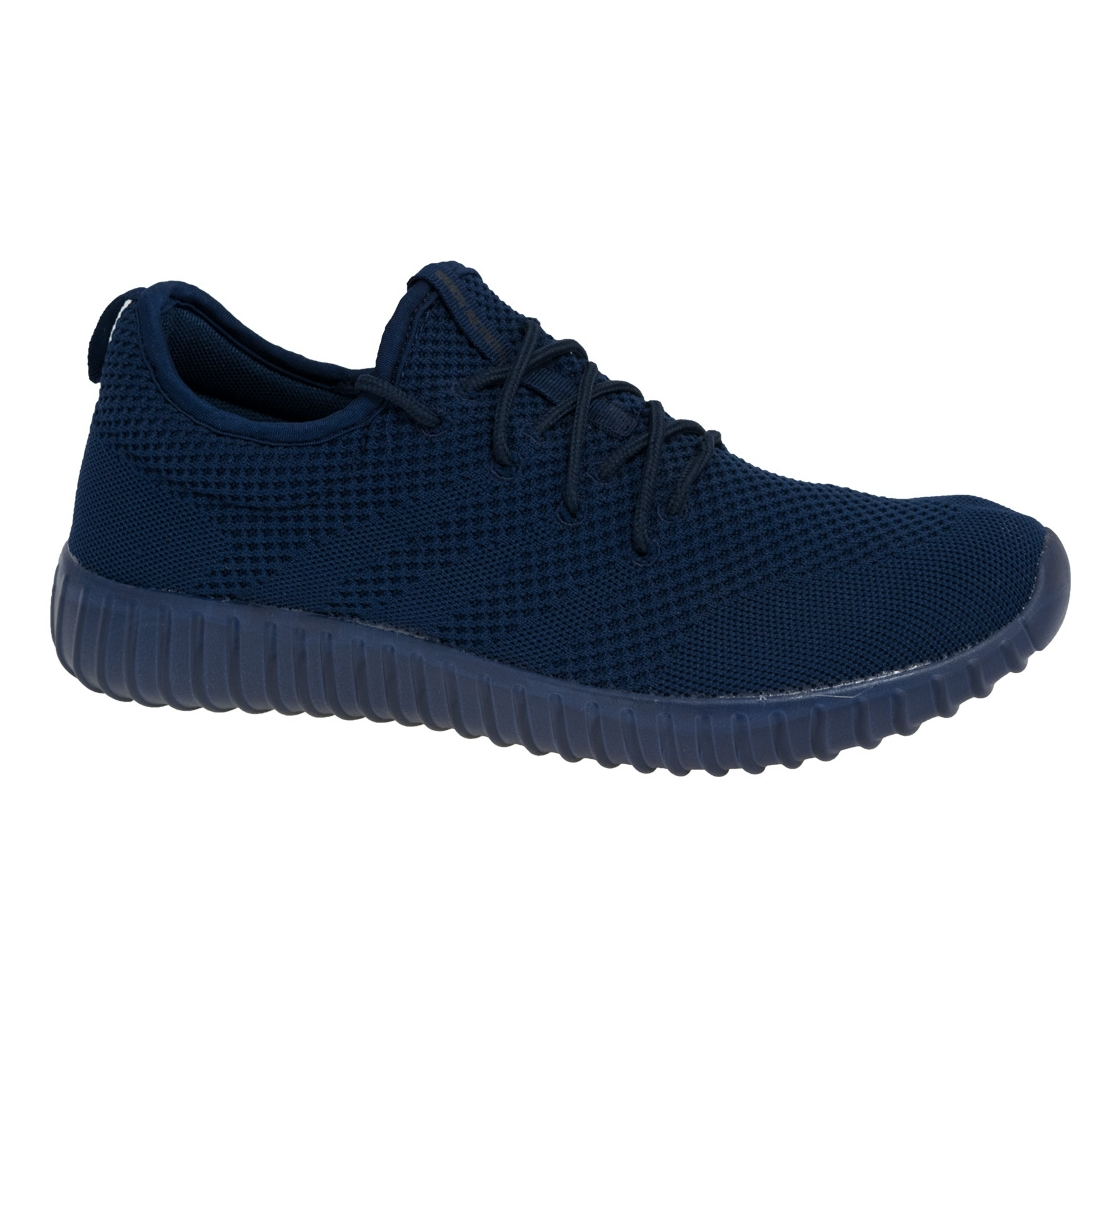 Body Action Ανδρικό Παπούτσι Μόδας Sports Shoes 093712